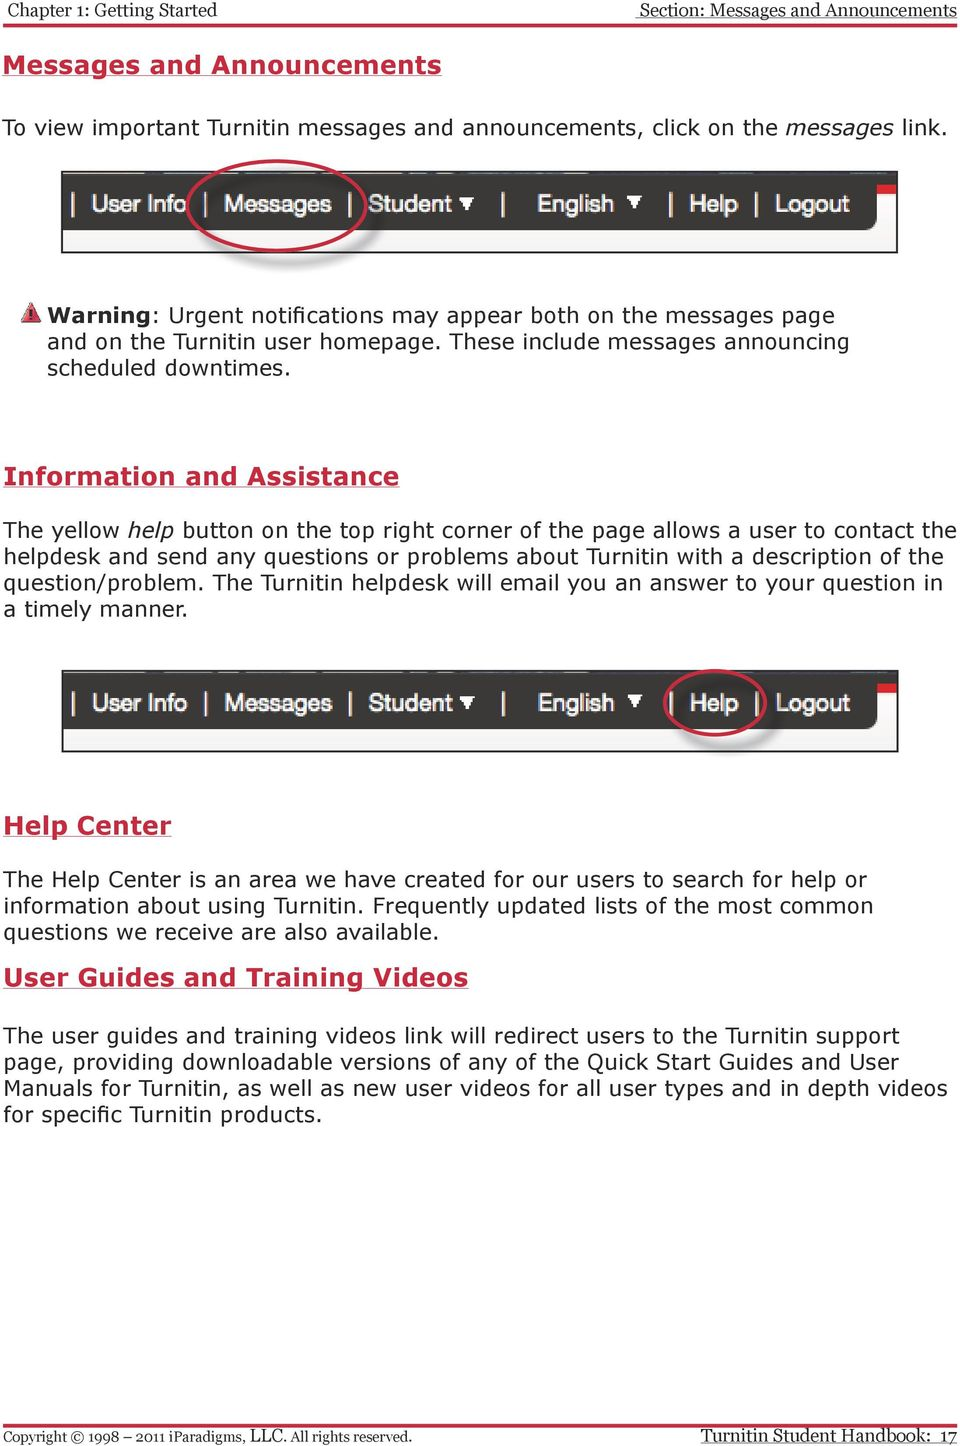 Information and Assistance The yellow help button on the top right corner of the page allows a user to contact the helpdesk and send any questions or problems about Turnitin with a description of the